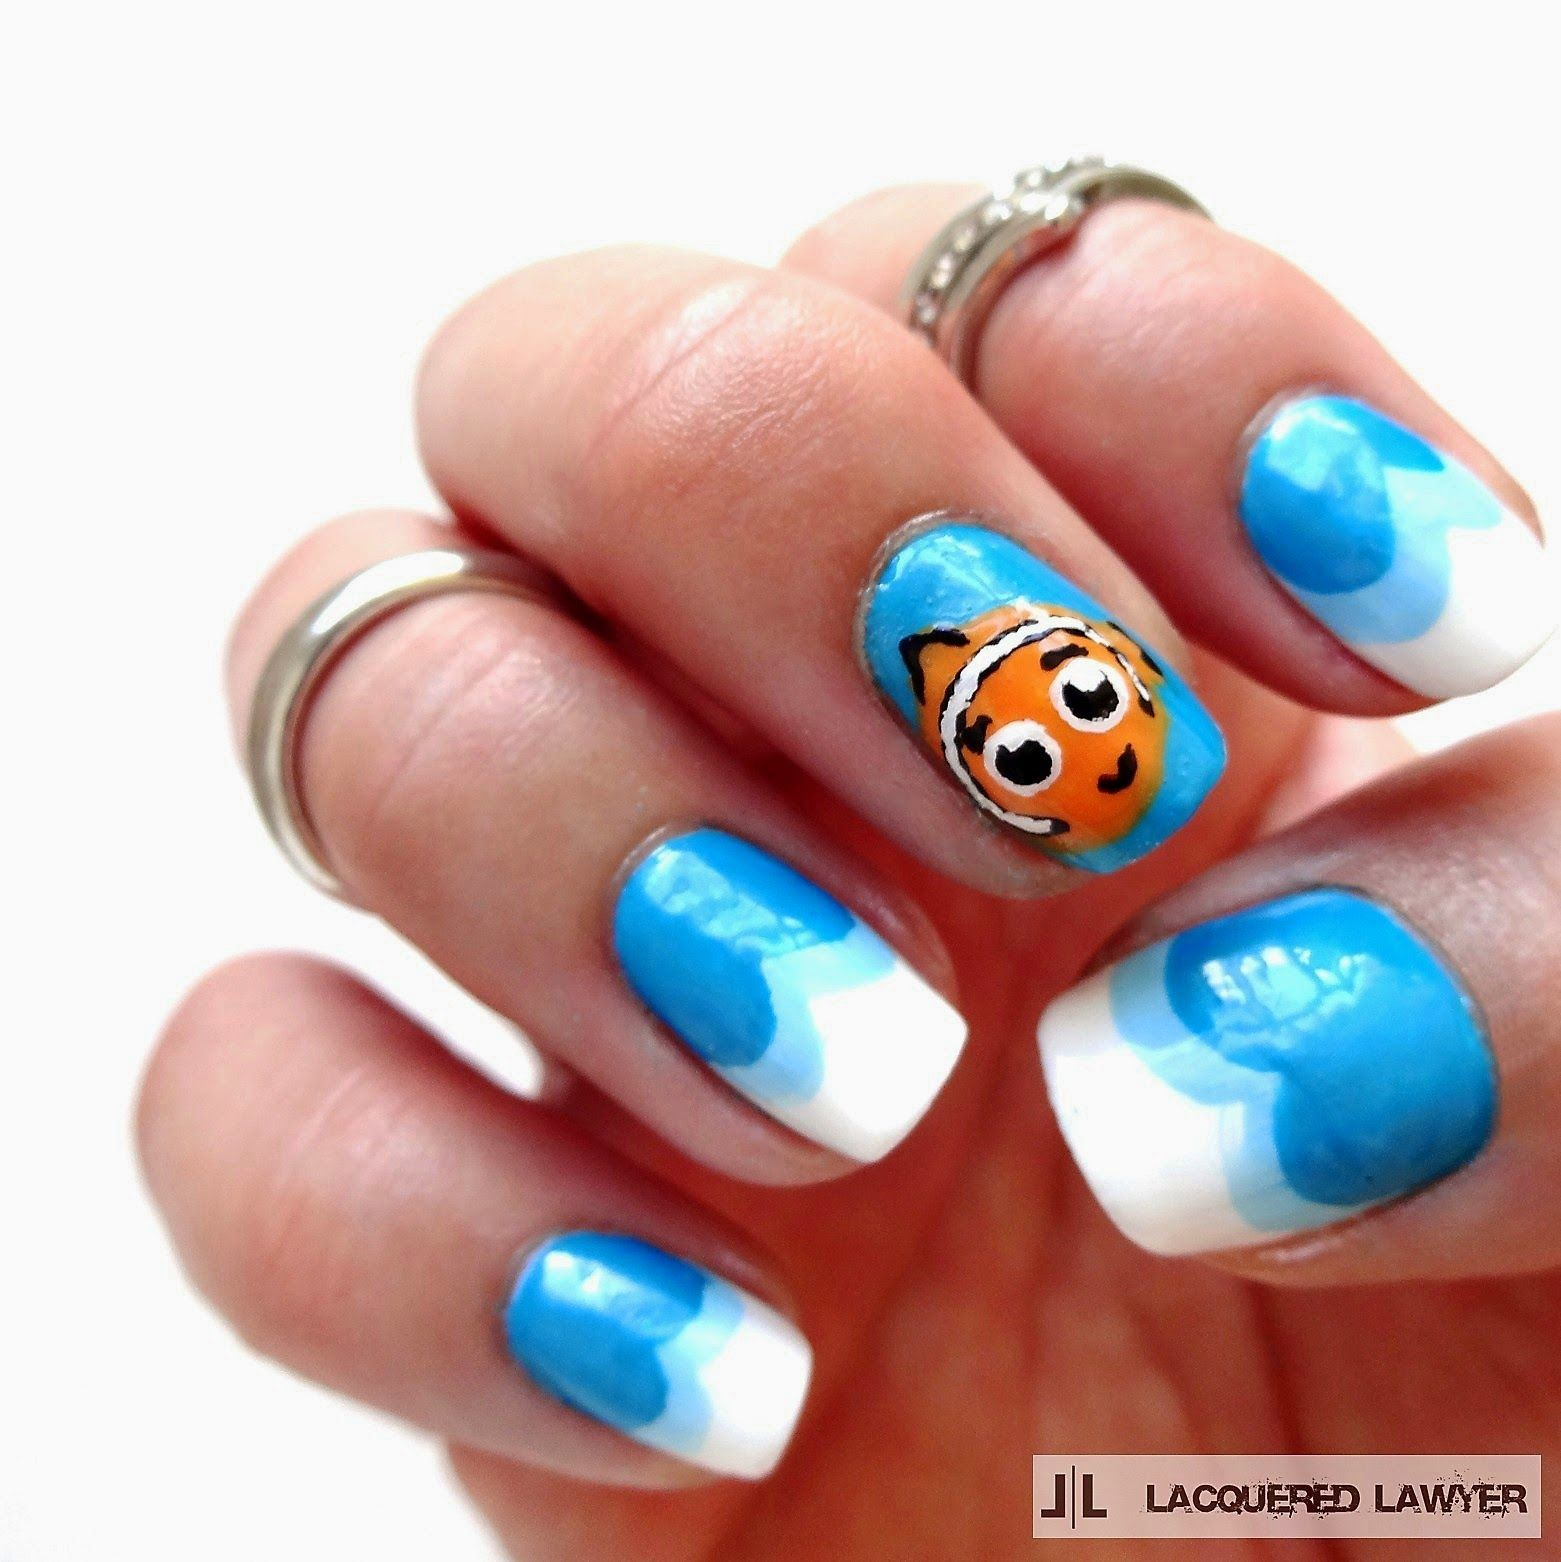 Finding Nemo Nails | Karneval und Nageldesign